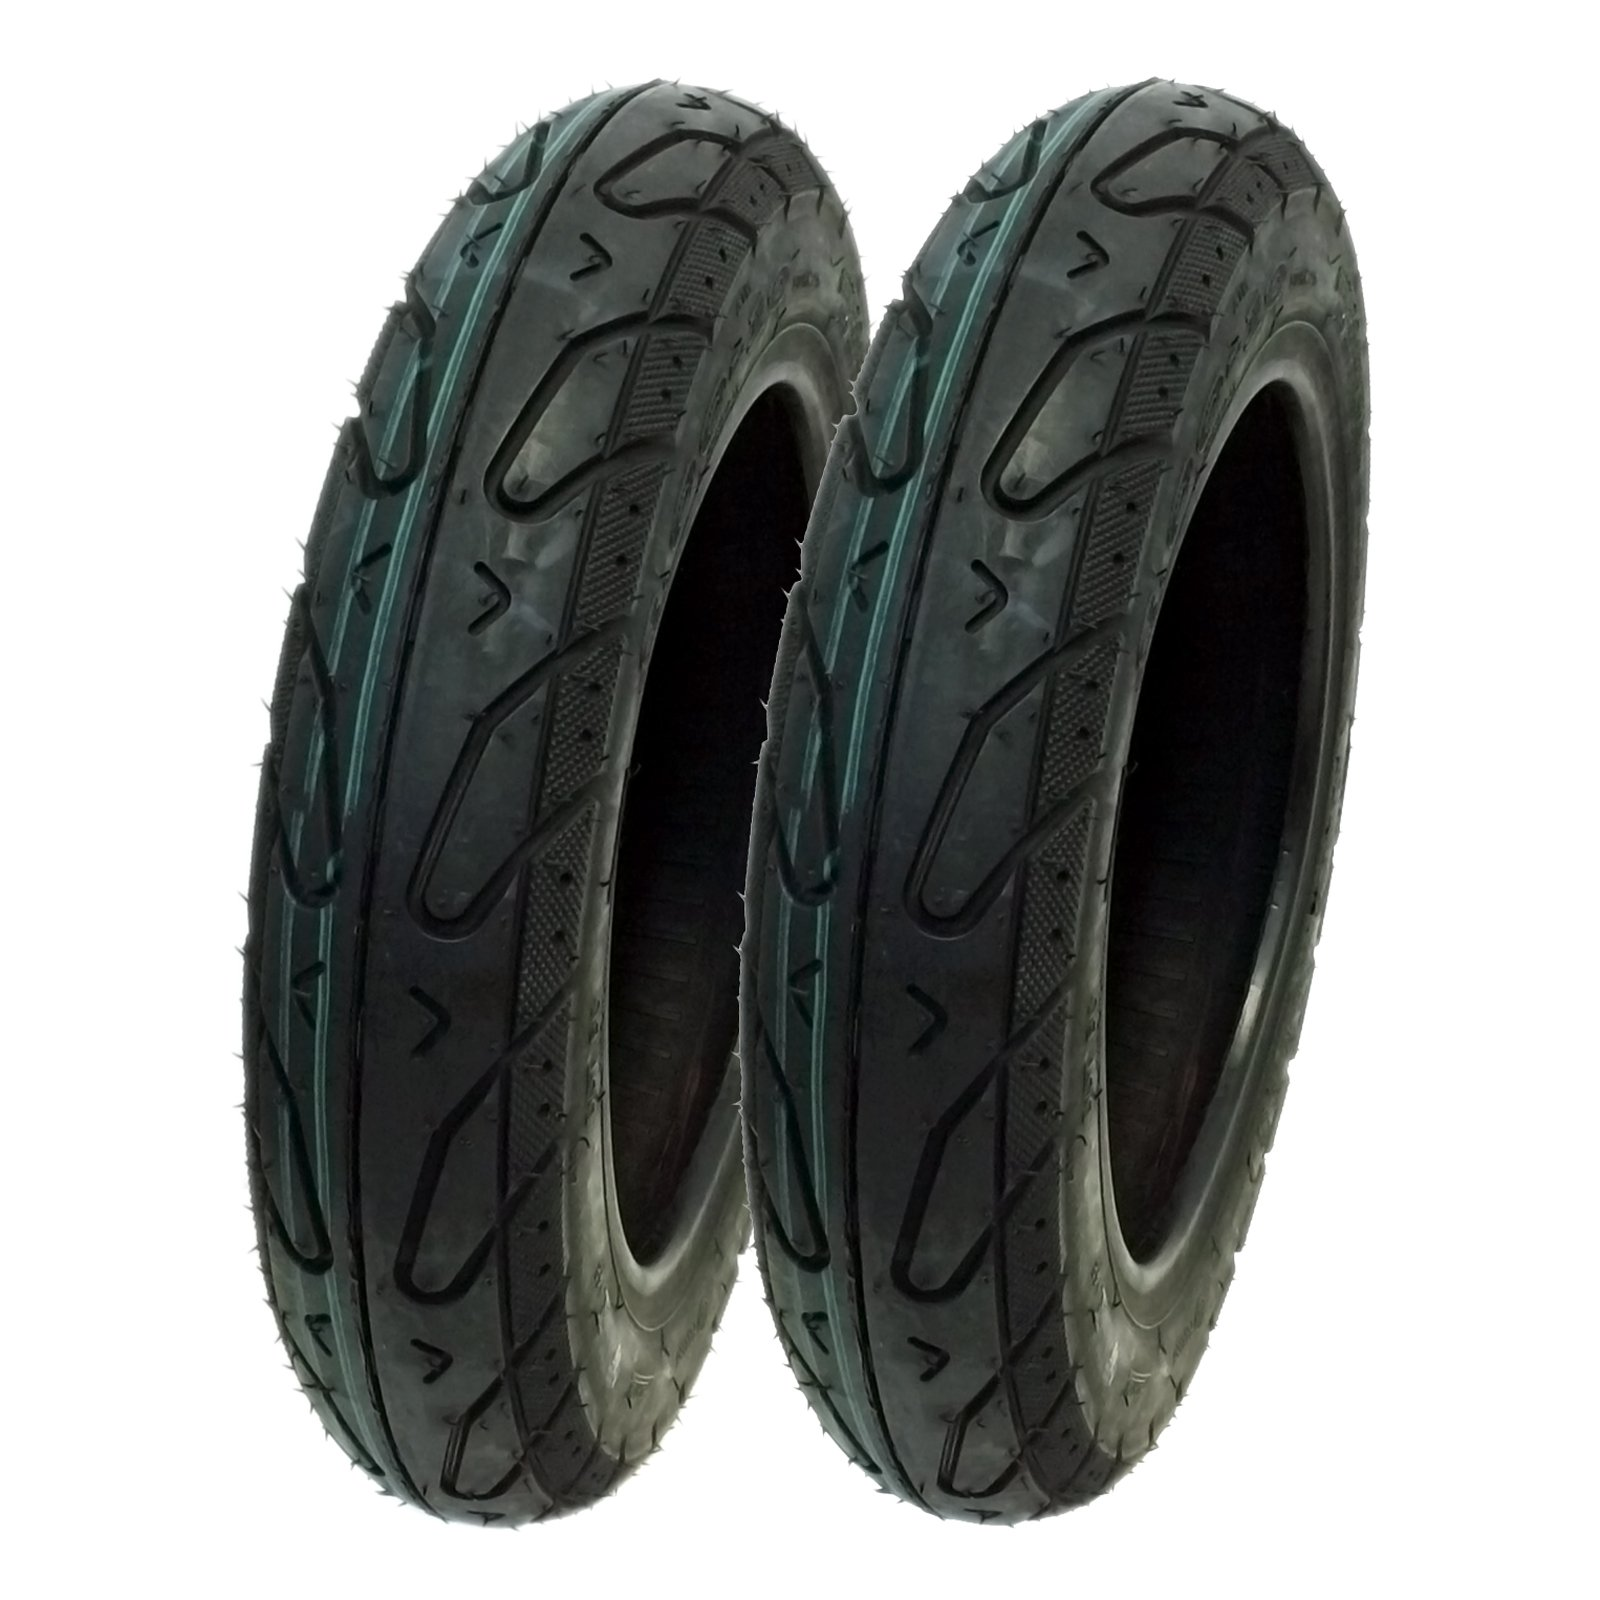 MMG Set of 2 Tires Size 3.00-10 Tubeless Front or Rear Motorcycle Scooter Moped by MMG